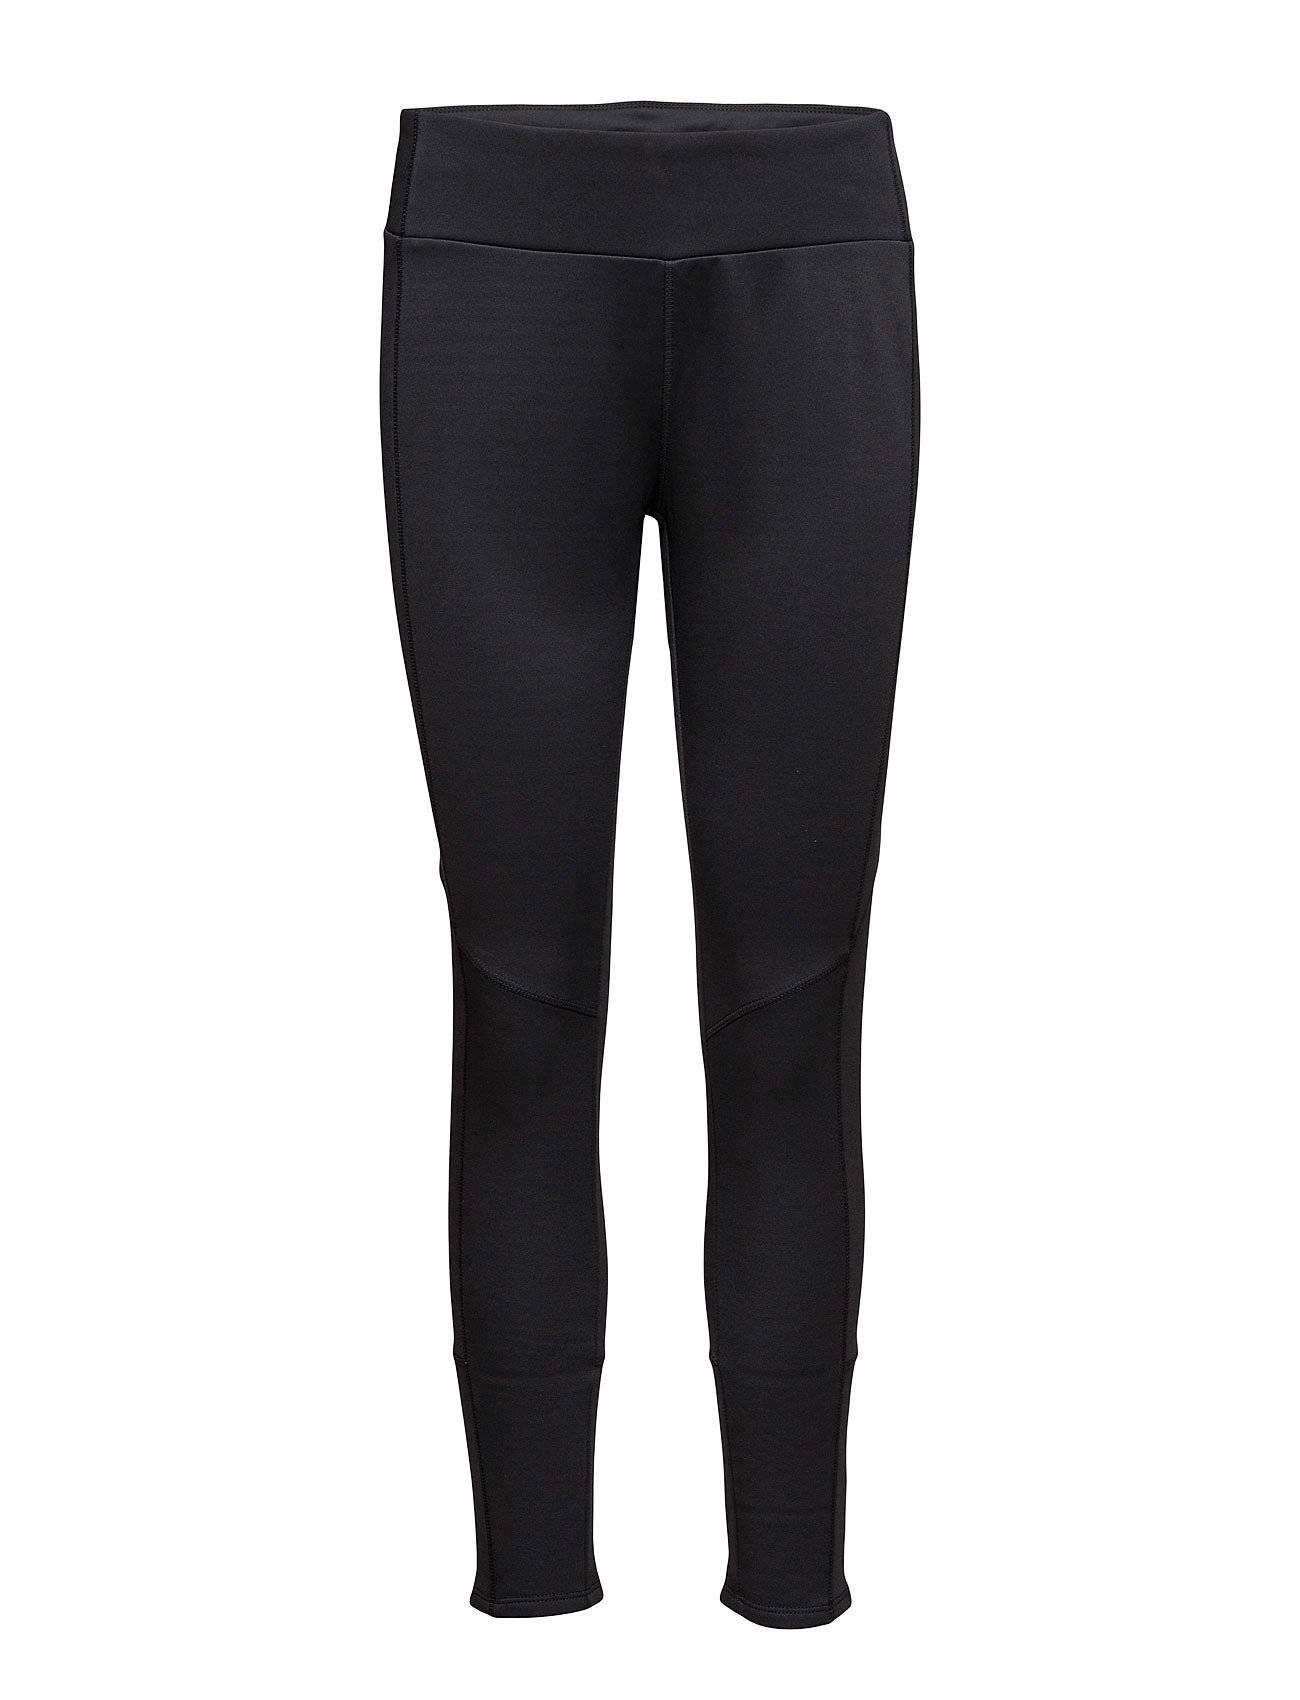 Twist & Tango Be Winter Running Tights